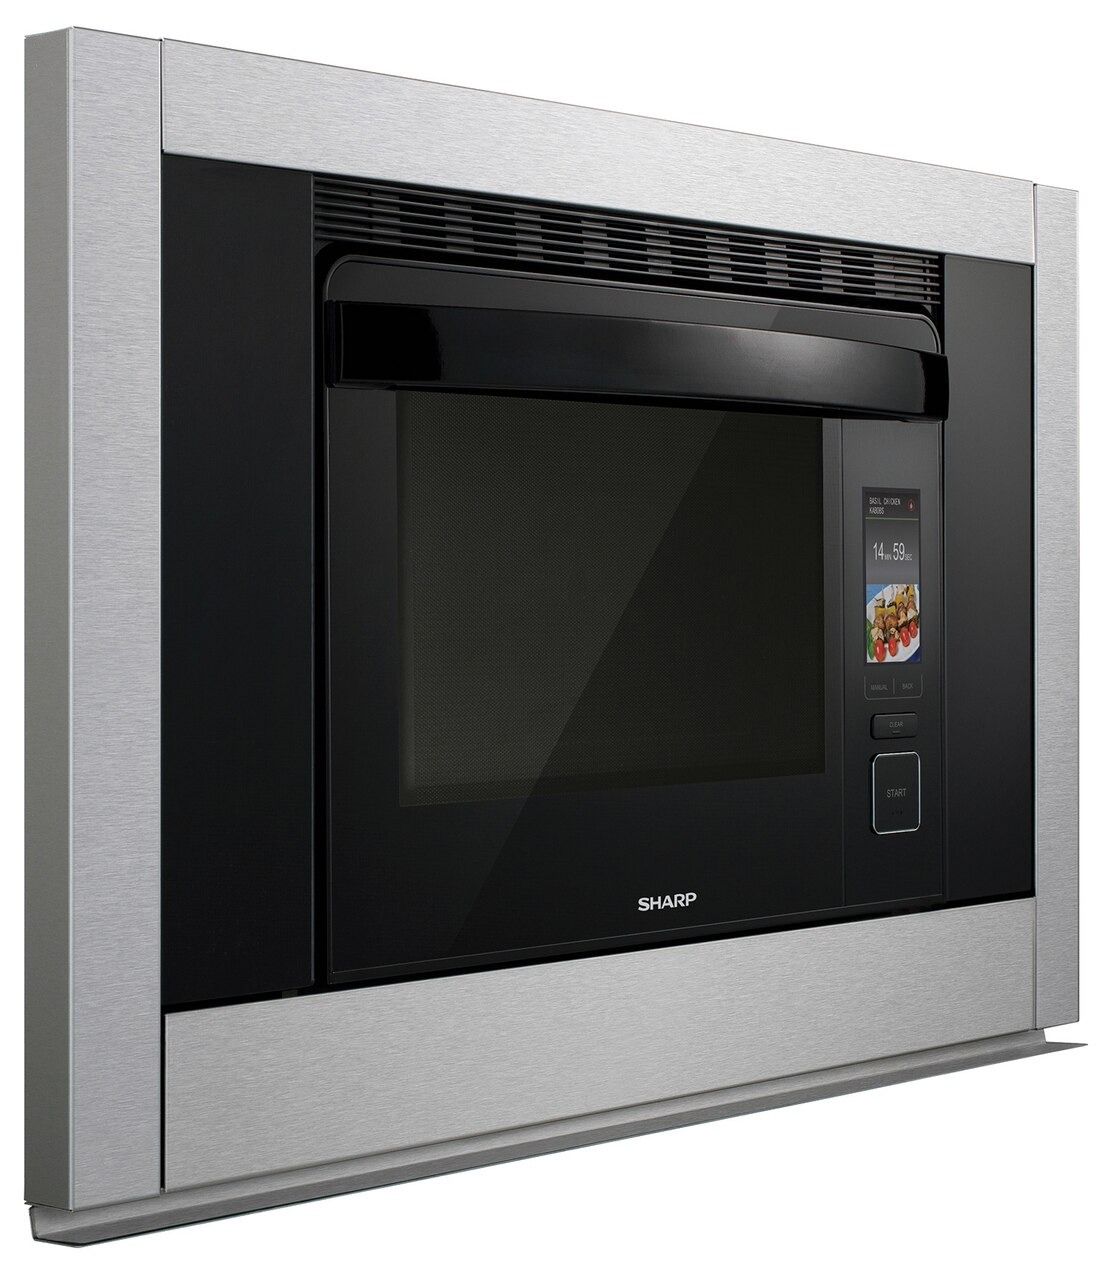 1.1 cu. ft. Supersteam+ Superheated Steam and Convection Built-in Wall Oven (SSC3088AS) – right side view